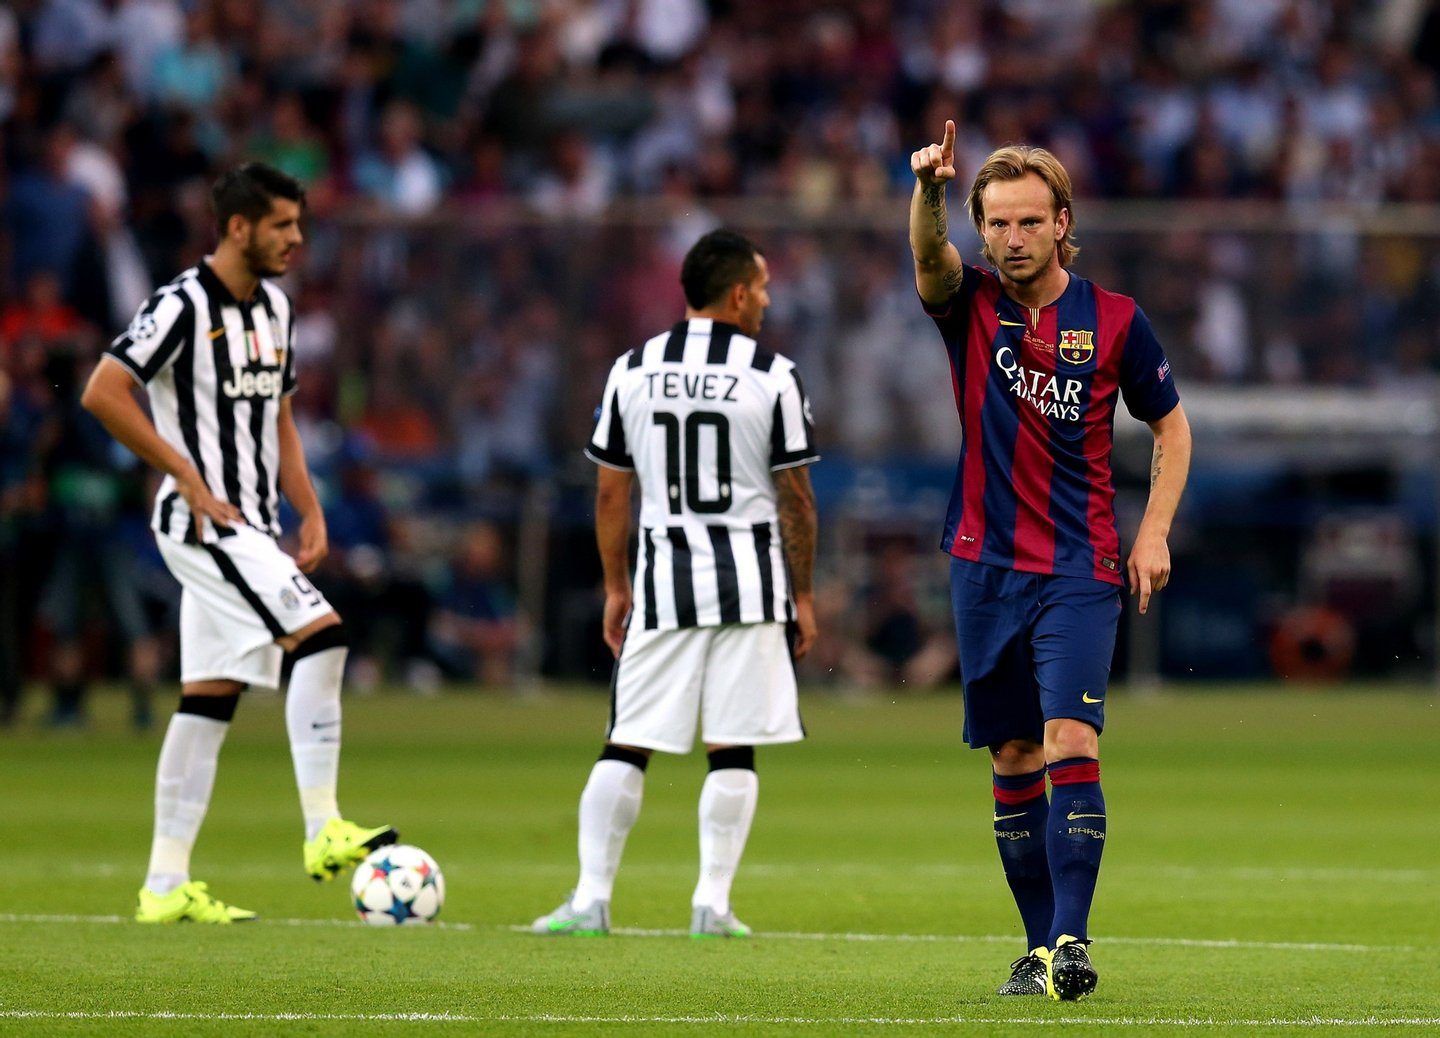 BERLIN, GERMANY - JUNE 6: Ivan Rakitic of FC Barcelona celebrates scoring the opening goal during the UEFA Champions League Final match between Juventus and FC Barcelona at the Olympiastadion on June 6, 2015 in Berlin, Germany. (Photo by Chris Brunskill Ltd/Getty Images)